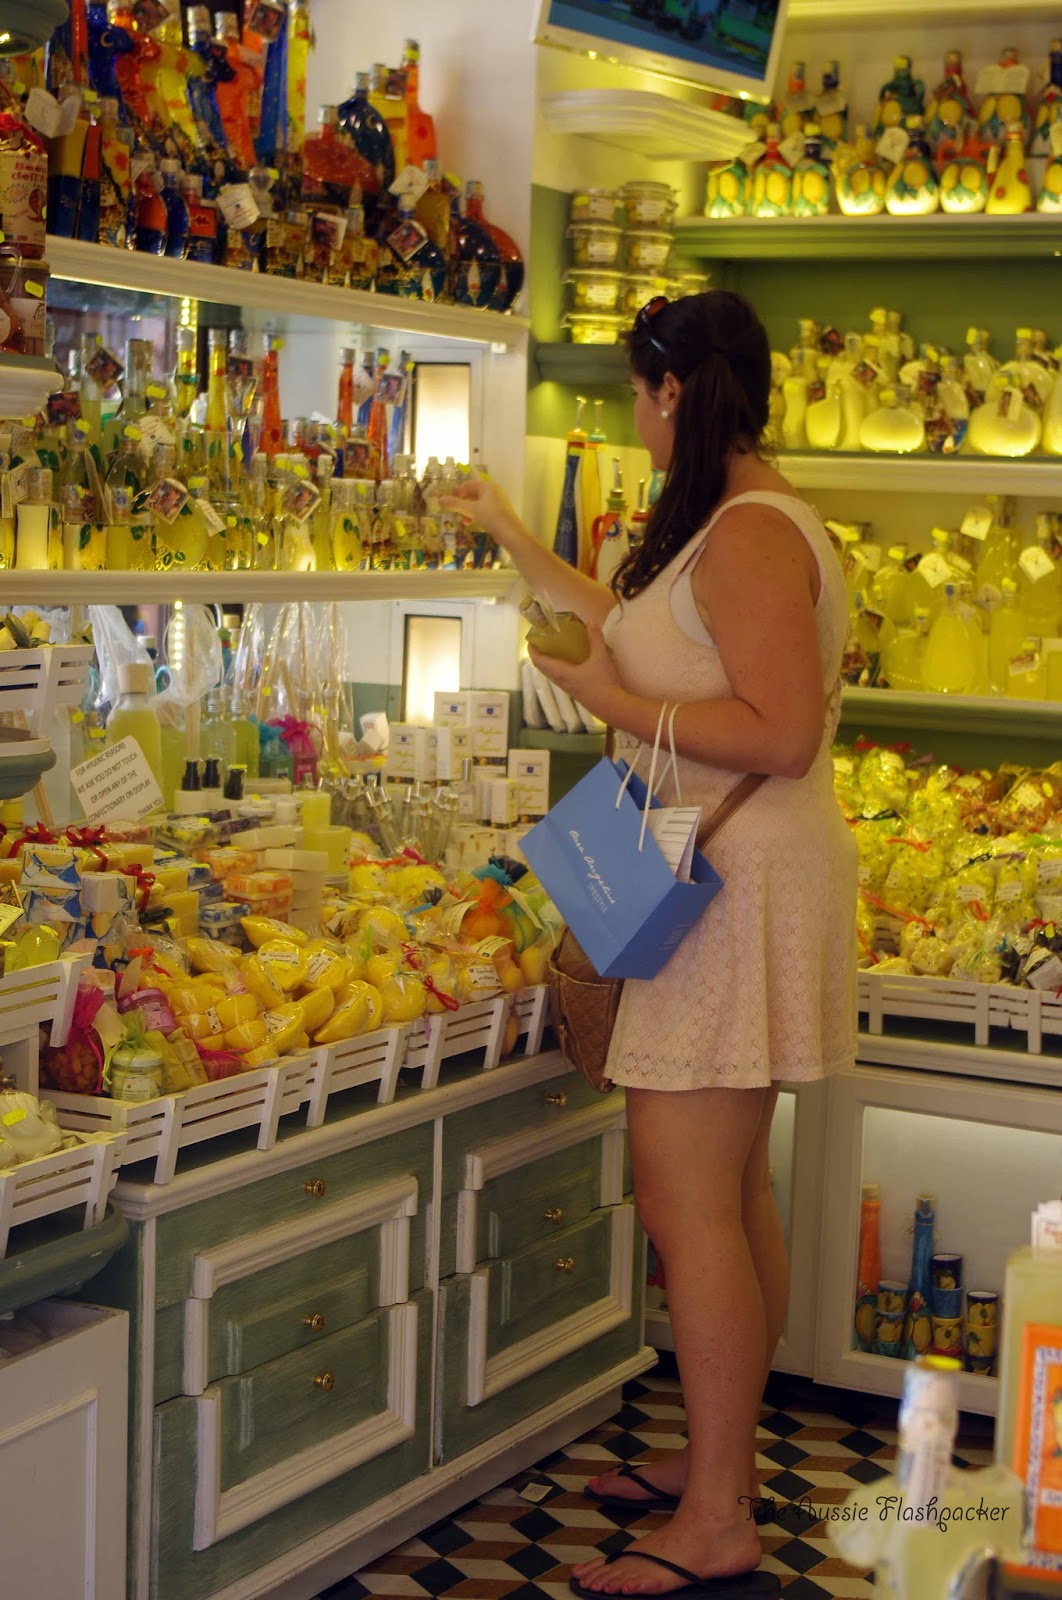 Girl shopping for Limoncello in Amalfi